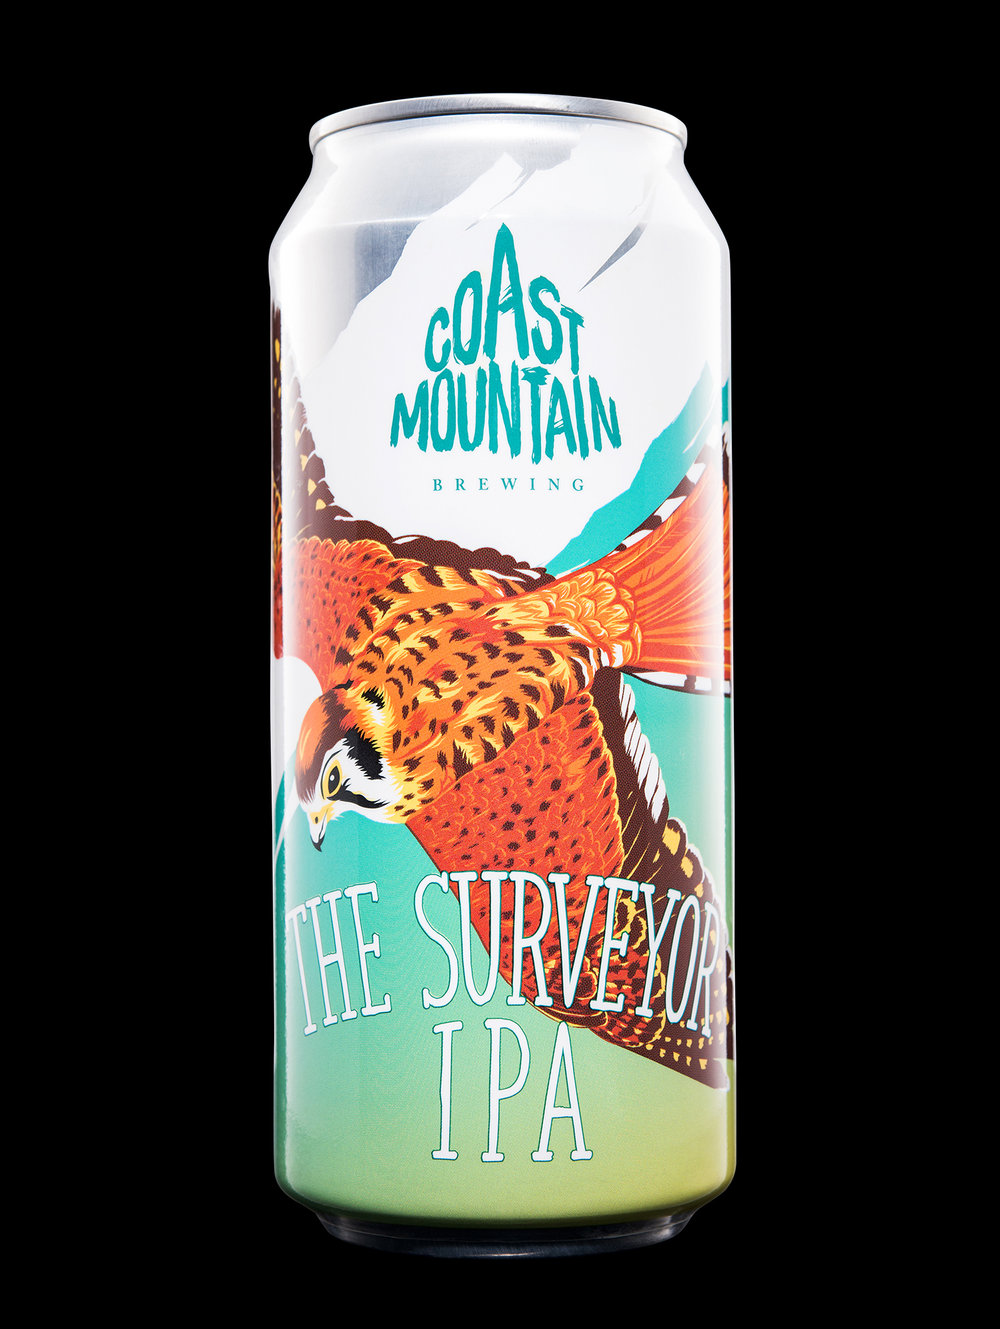 Branding and Packaging Design for Coast Mountain Brewing